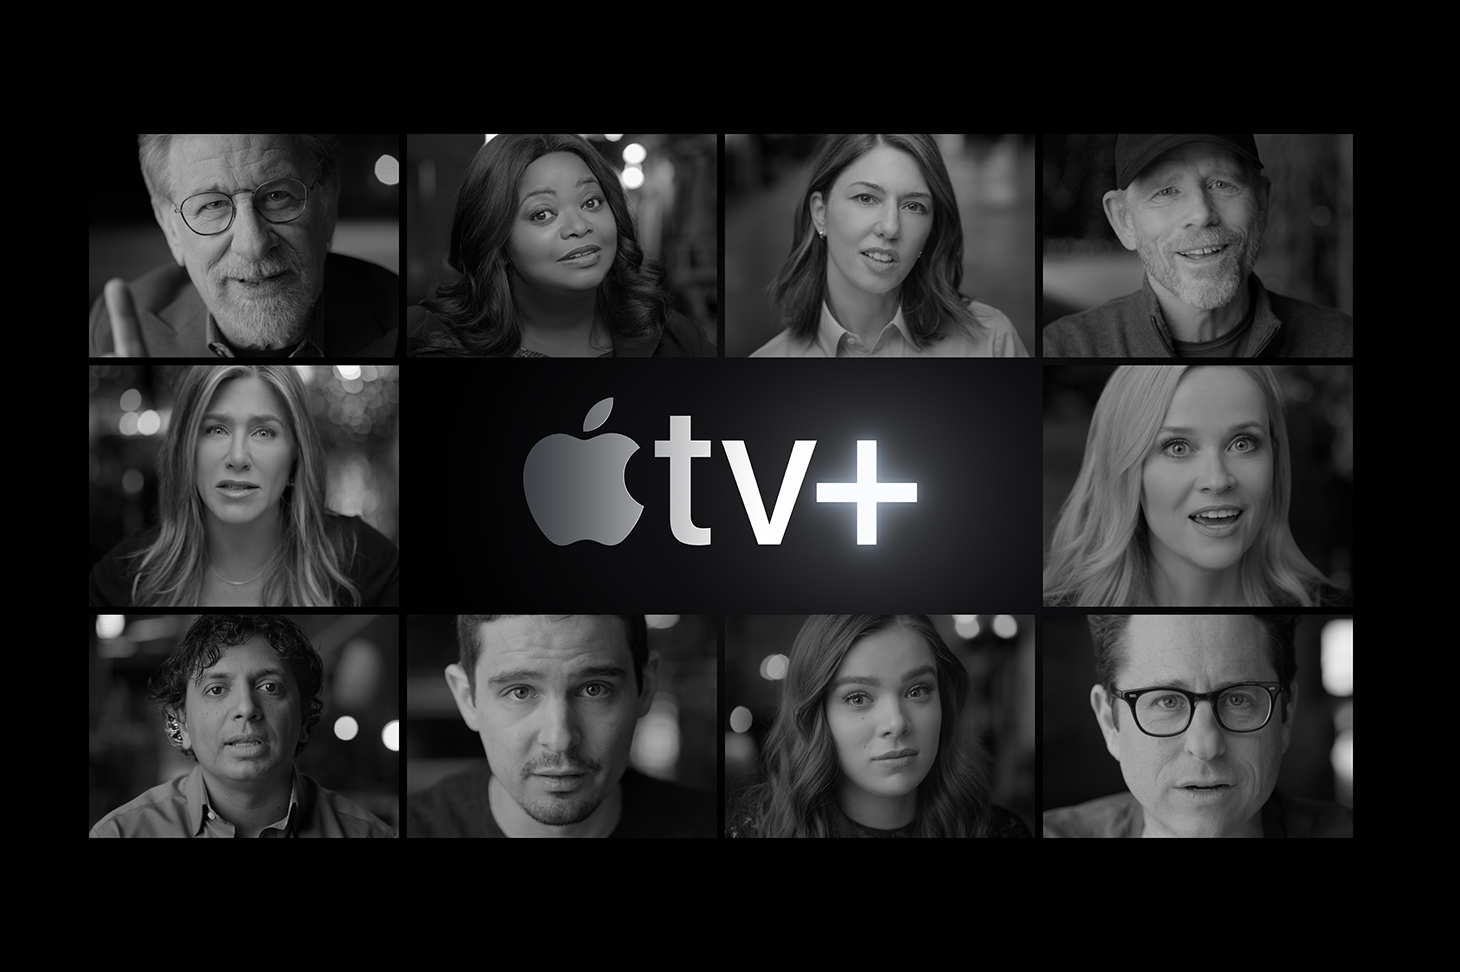 Steven Spielberg, JJ Abrams, Sofia Coppola, Ron Howard hype debut of Apple TV+